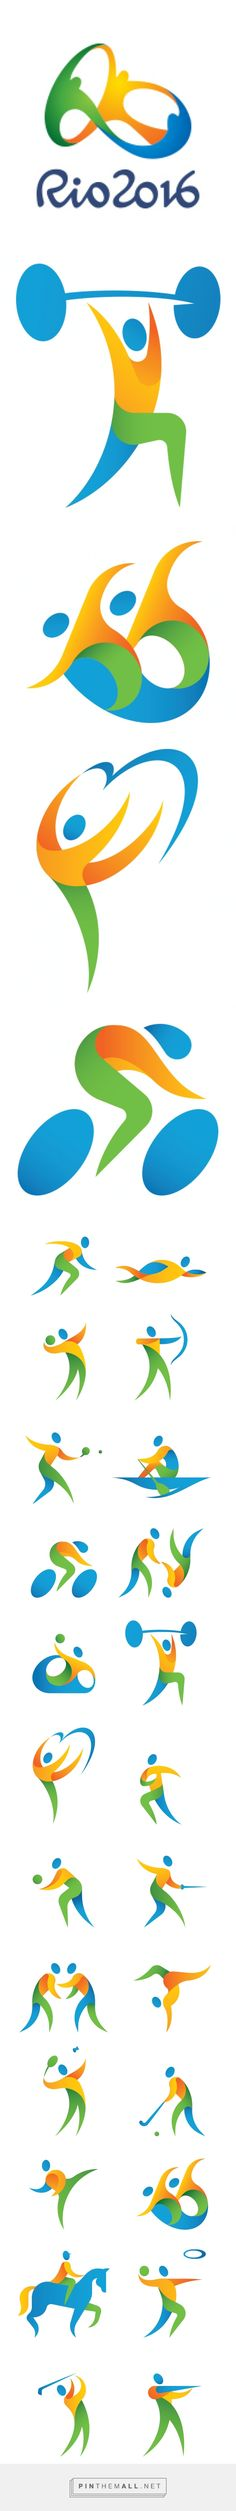 2016 Rio Olympic Pictograms on Behance-https://www.behance.net/gallery/24787821/2016-Rio-Olympic-Pictograms - created via https://pinthemall.net